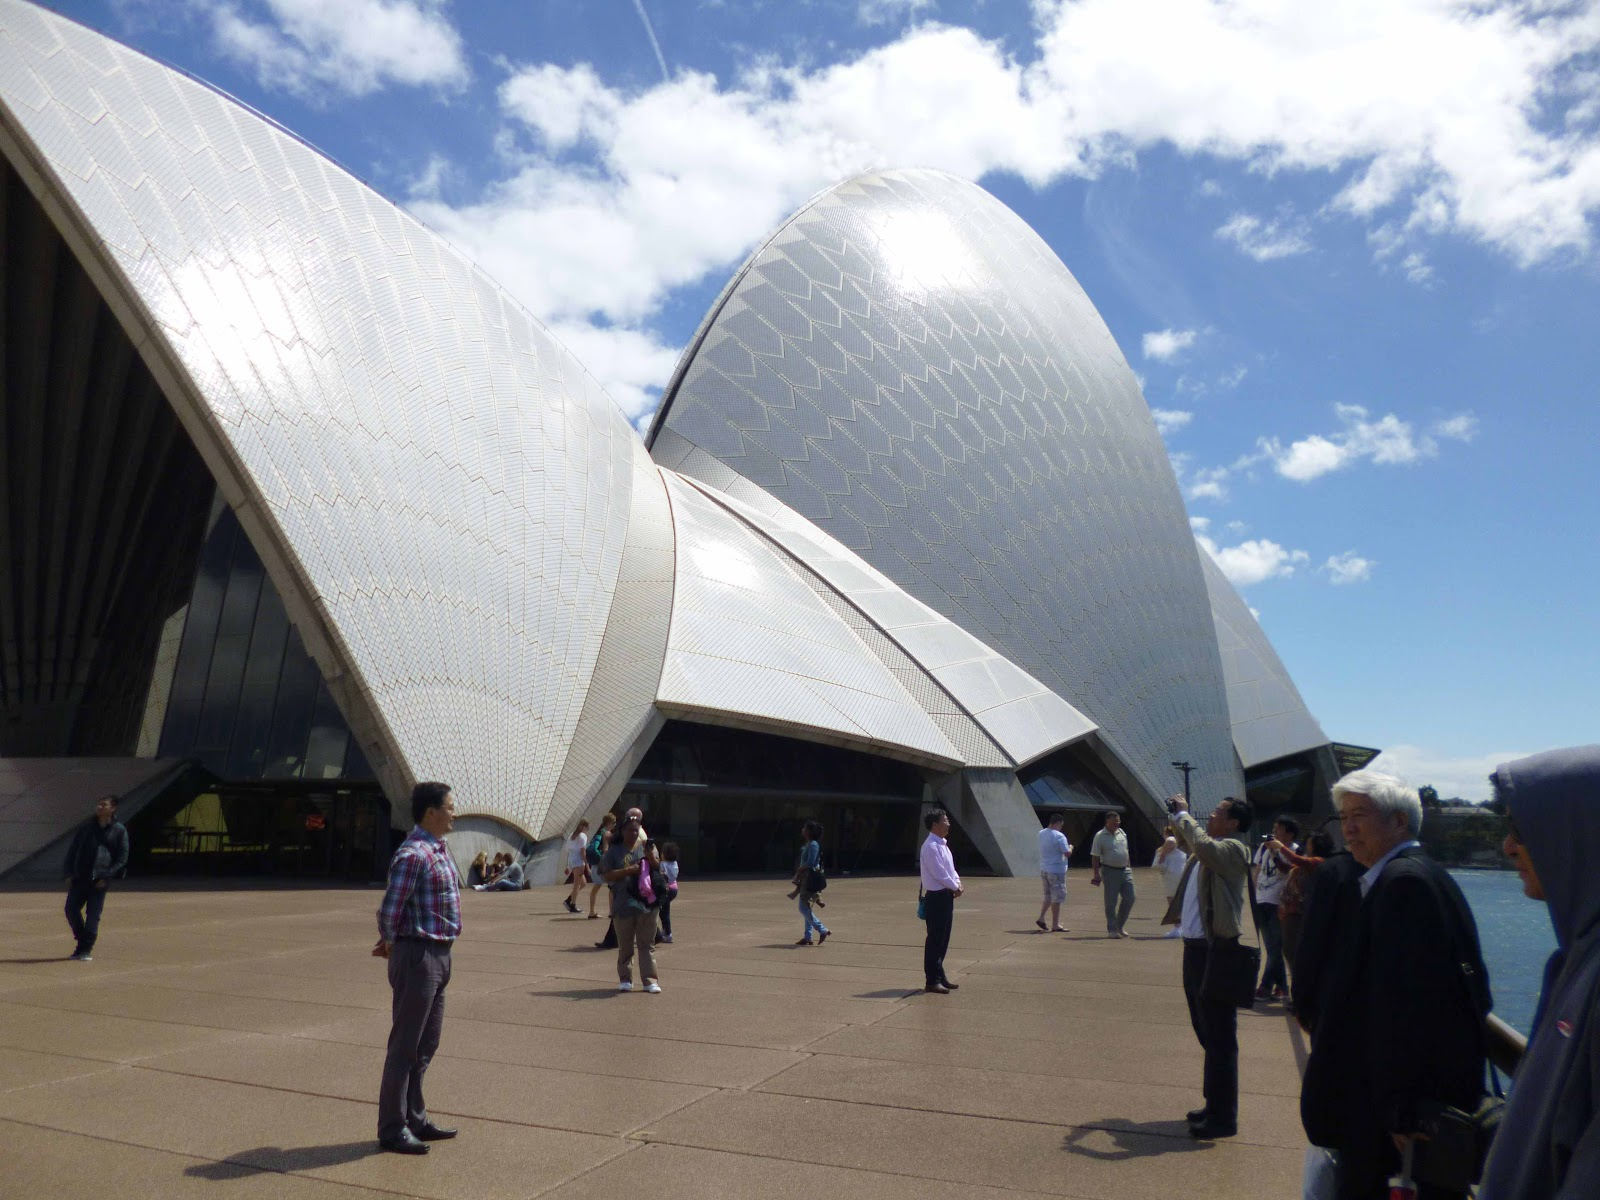 City of Sydney chases Chinese business and tourism